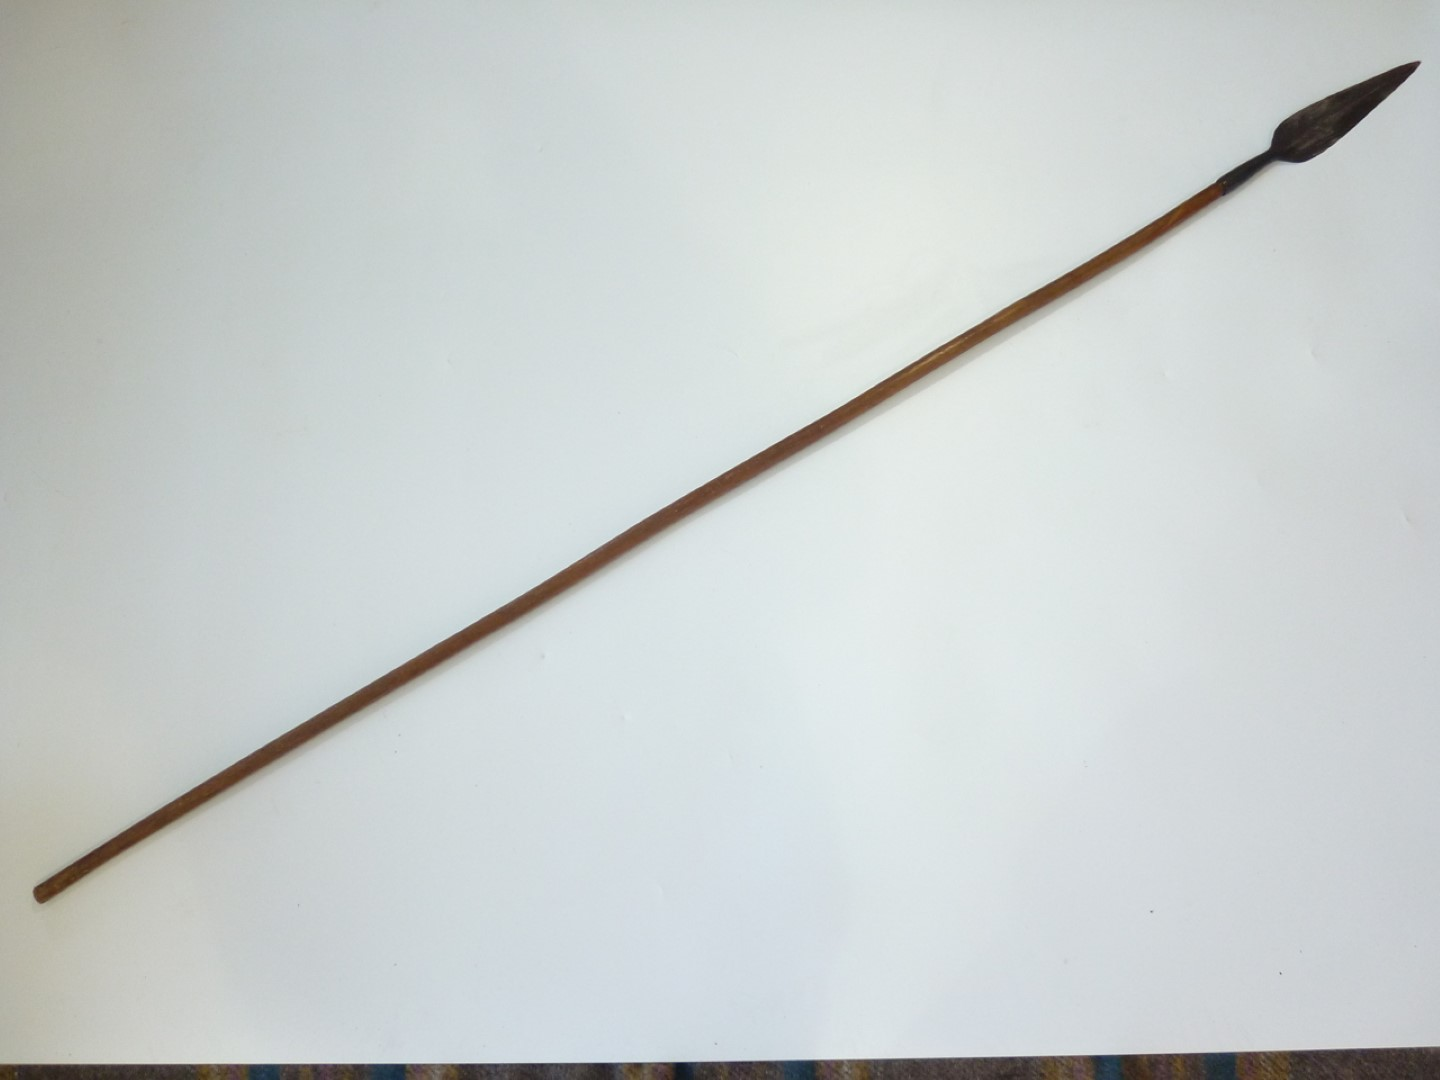 Lot 106 - A 19th Century Zulu iklwa spear together with one other African spear, 144 cm and 159 cm